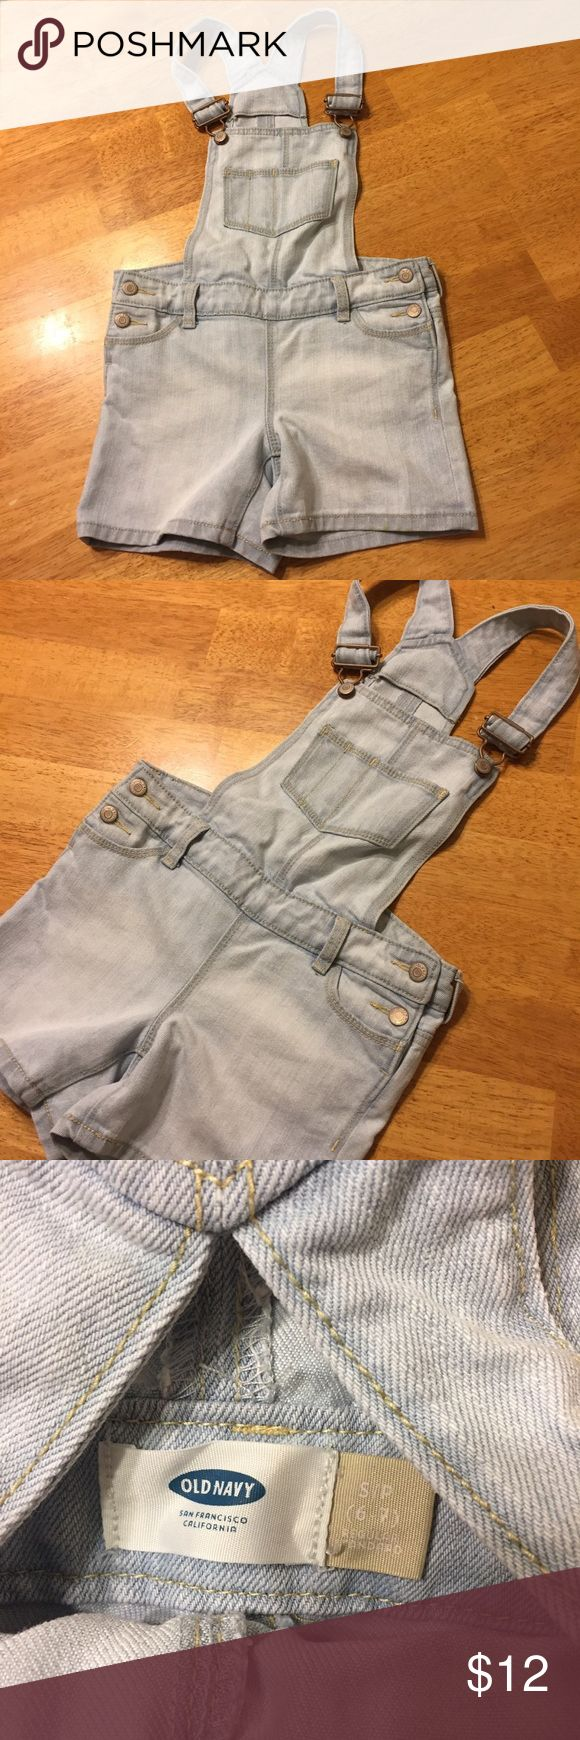 Old Navy overalls Old Navy overall shorts in excellent condition. Size small (6-7). Bundle with other girls' clothes to save! Old Navy Bottoms Shorts